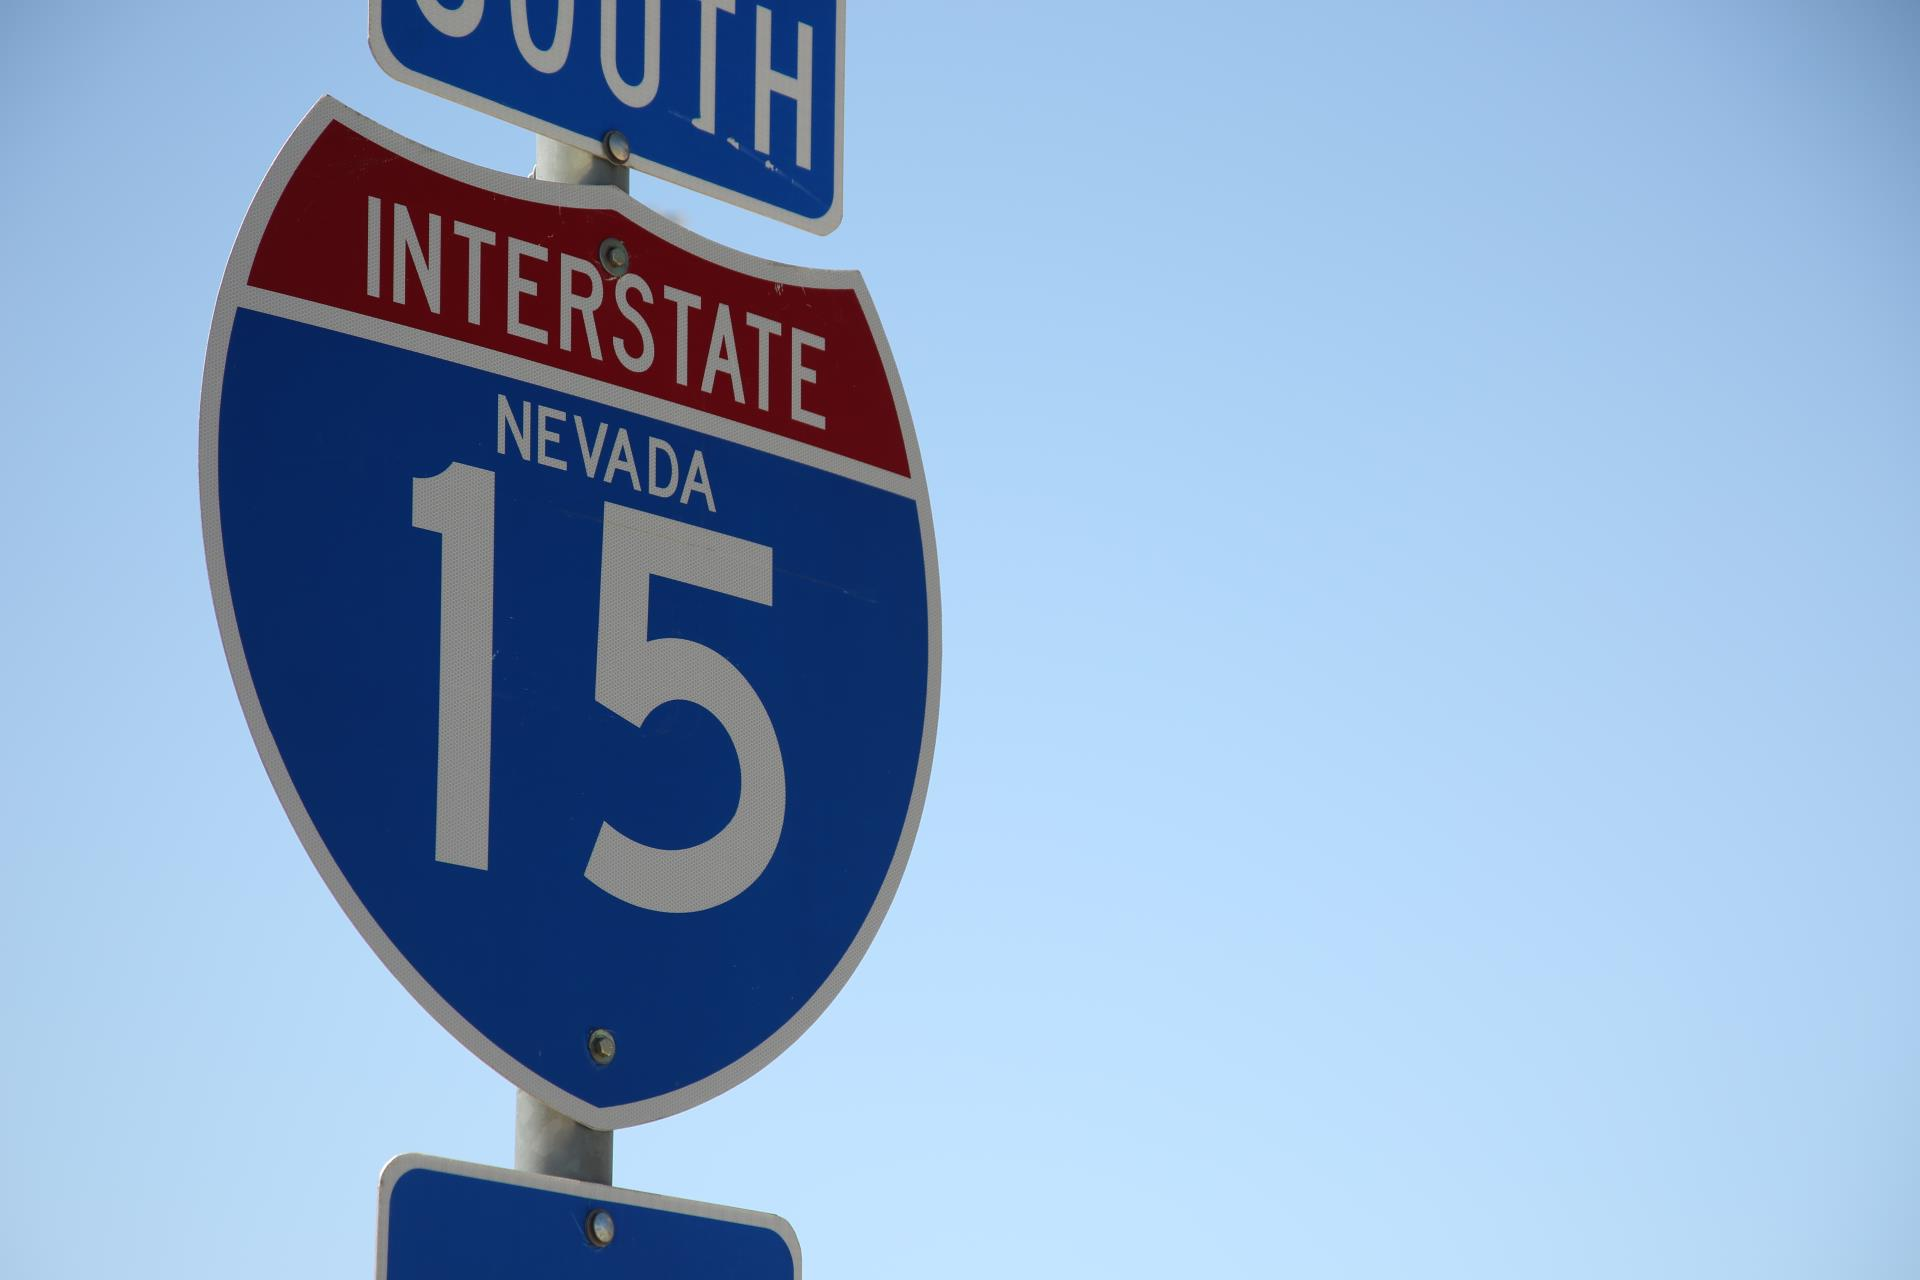 A photo of the Interstate 15 sign in Nevada